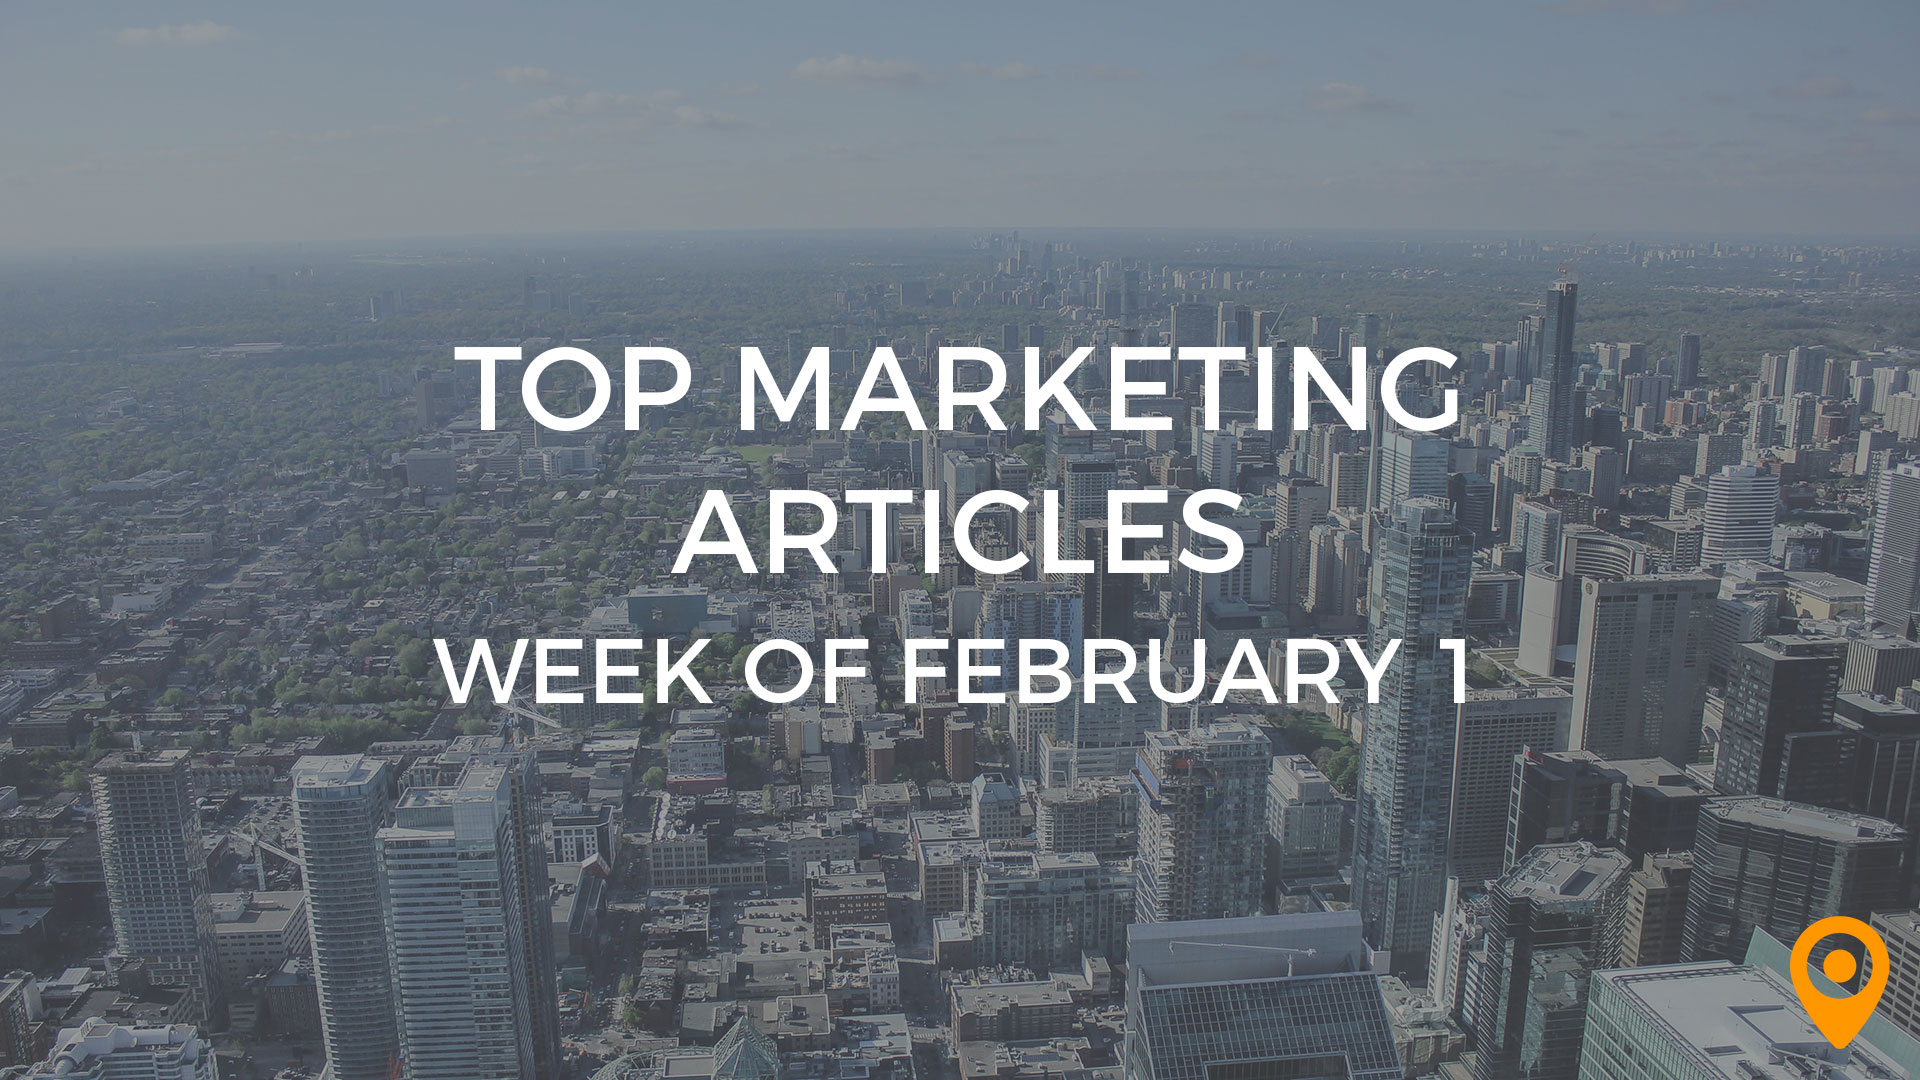 Top Marketing Articles Week of Feb 1